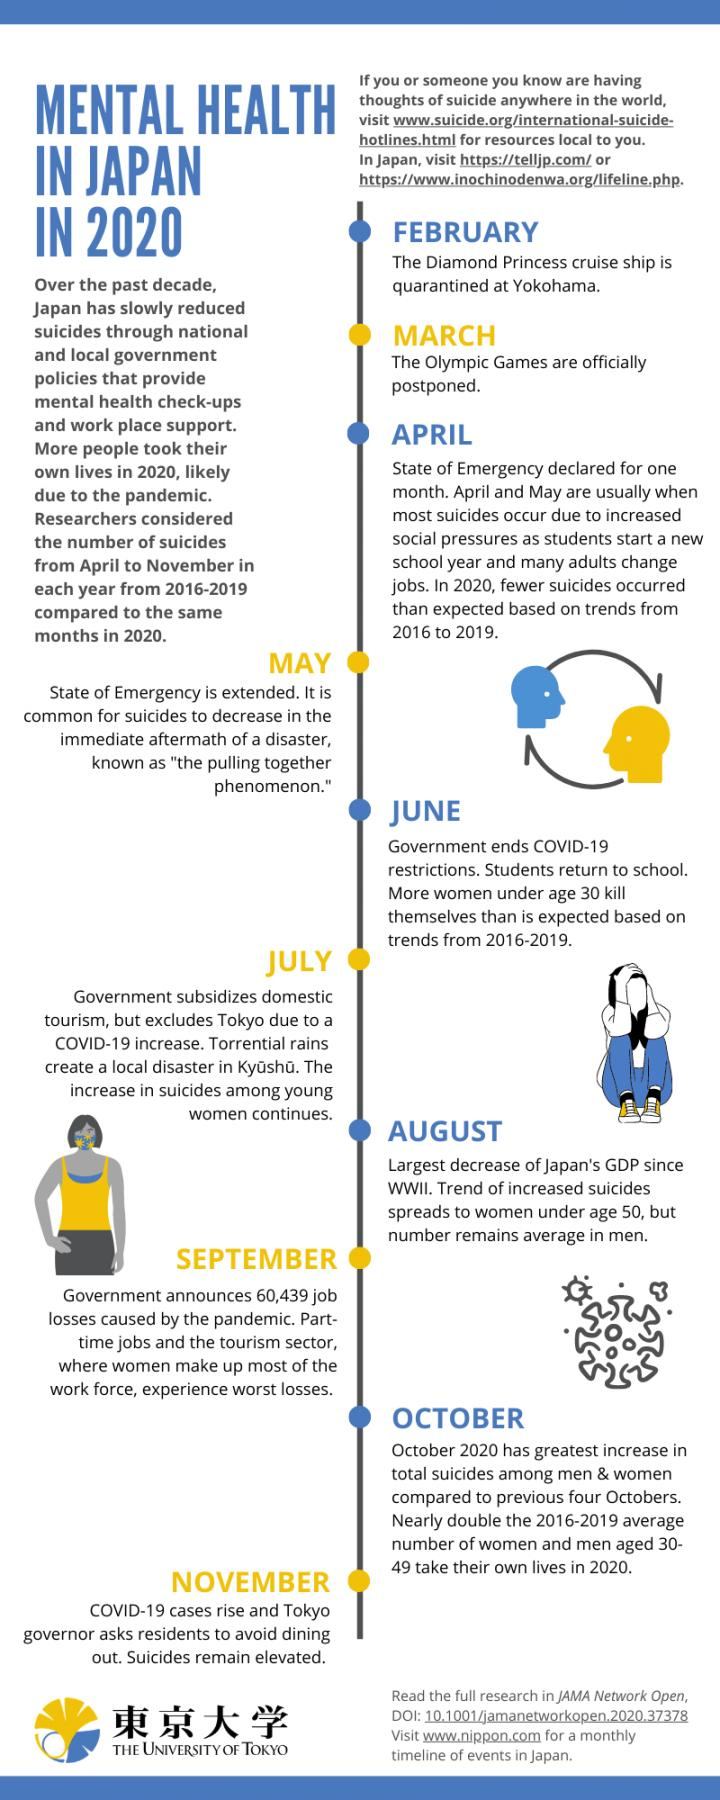 Timeline of COVID-19's economic effects and mental health concerns in Japan.